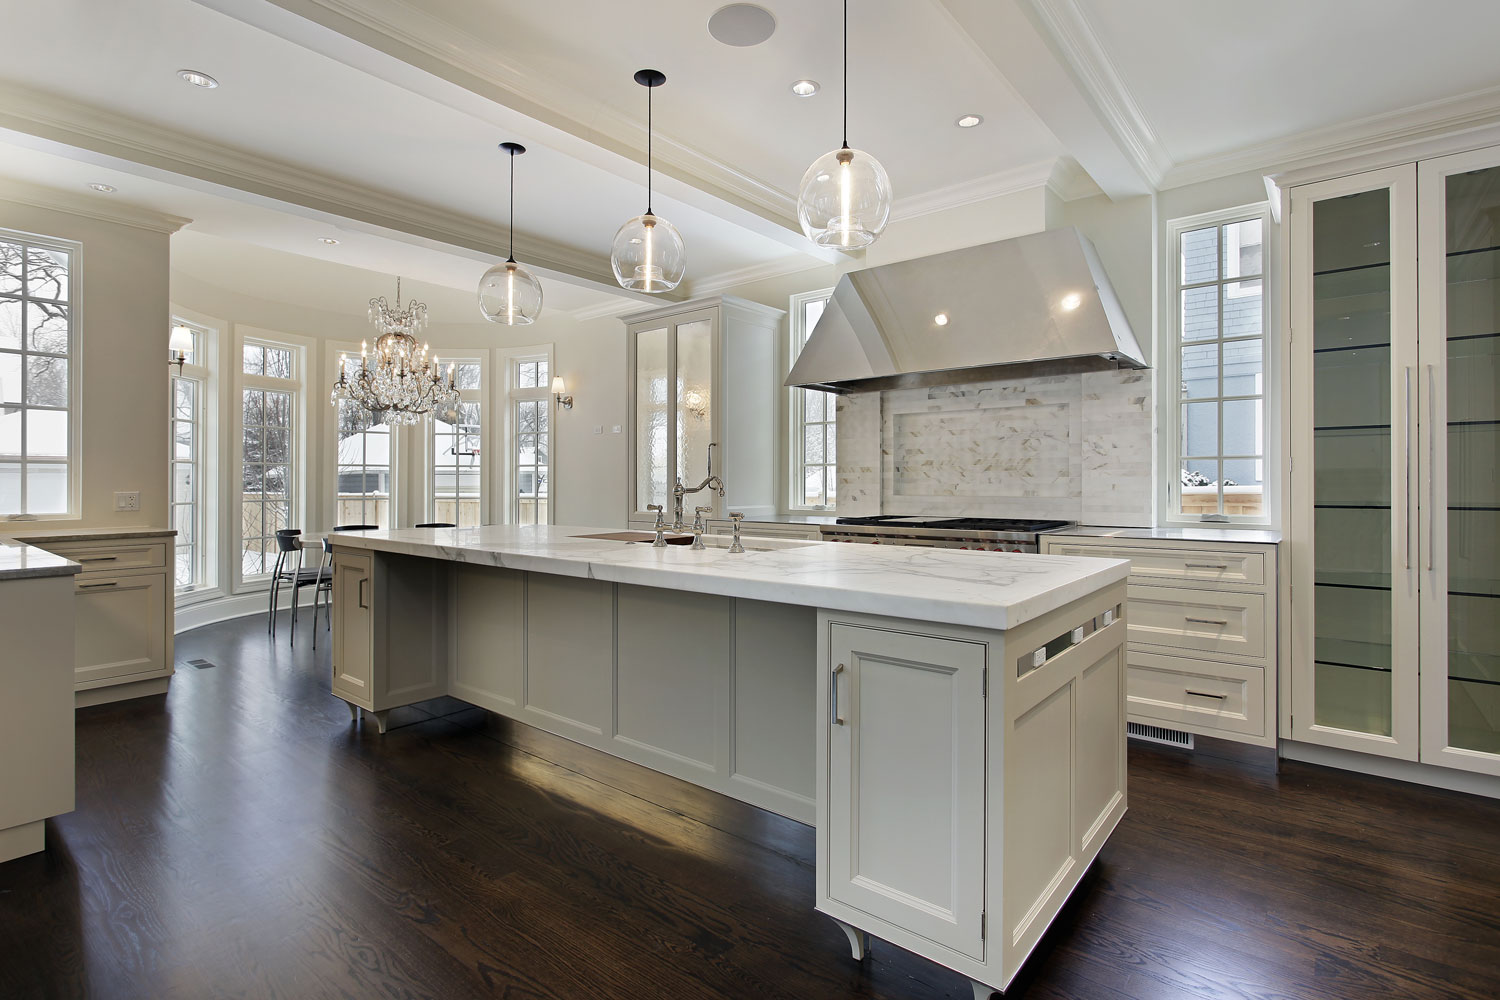 Kitchen Renos Putting Kitchen Costs On The Chopping Block